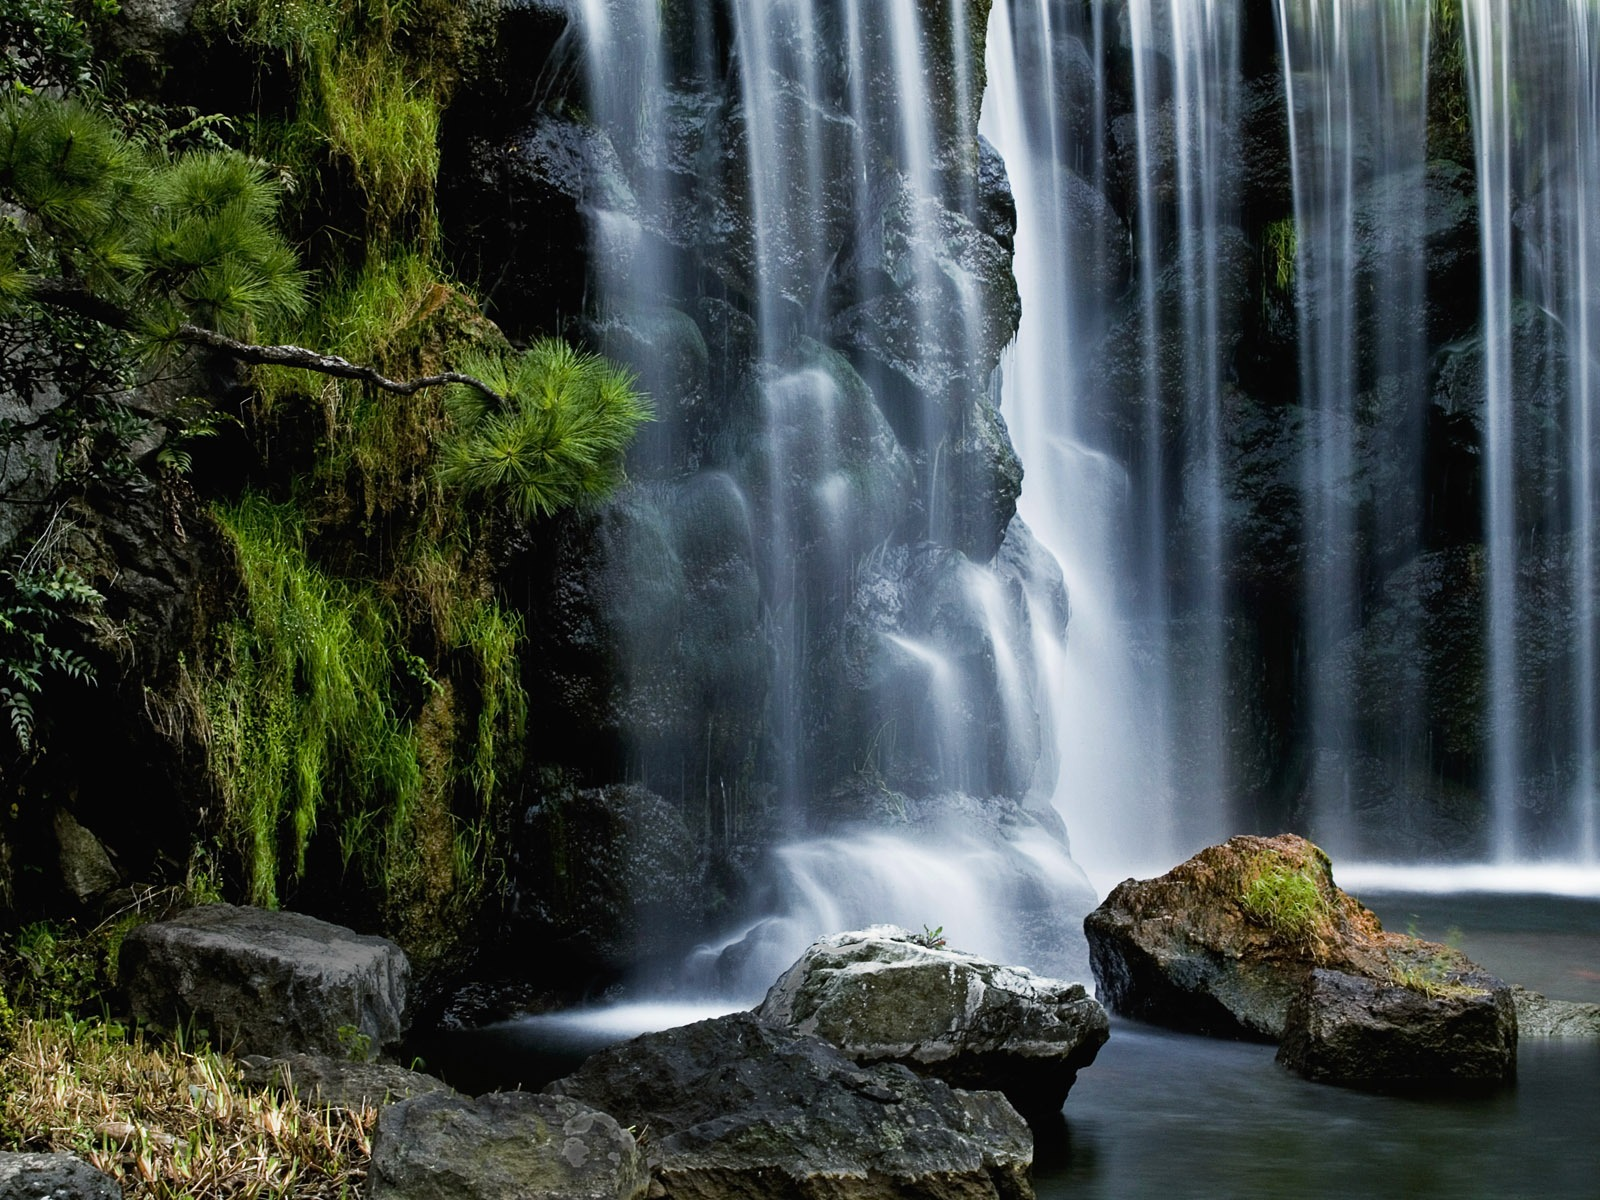 9 Spectacular Hd Waterfall Wallpapers To Download: The Scenic Nature-Spectacular Landscape Wallpaper9